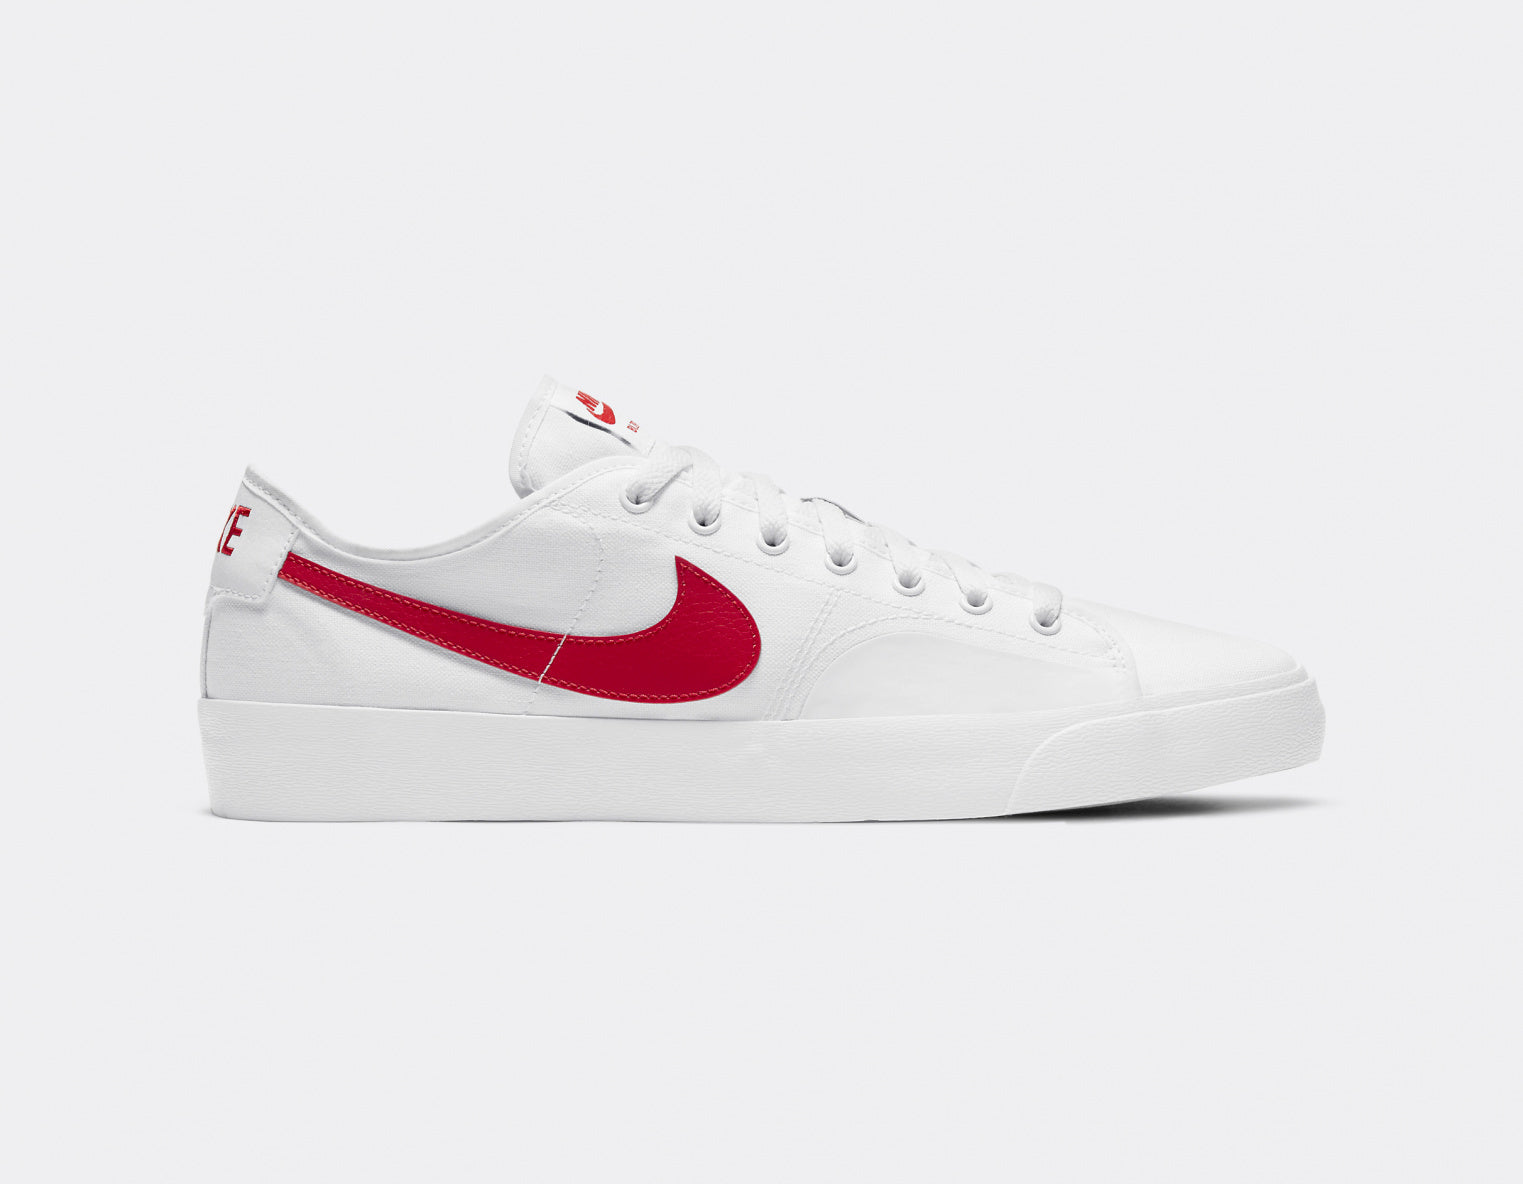 Nike SB Blazer Court Mens Shoes - White/White/Black/University Red